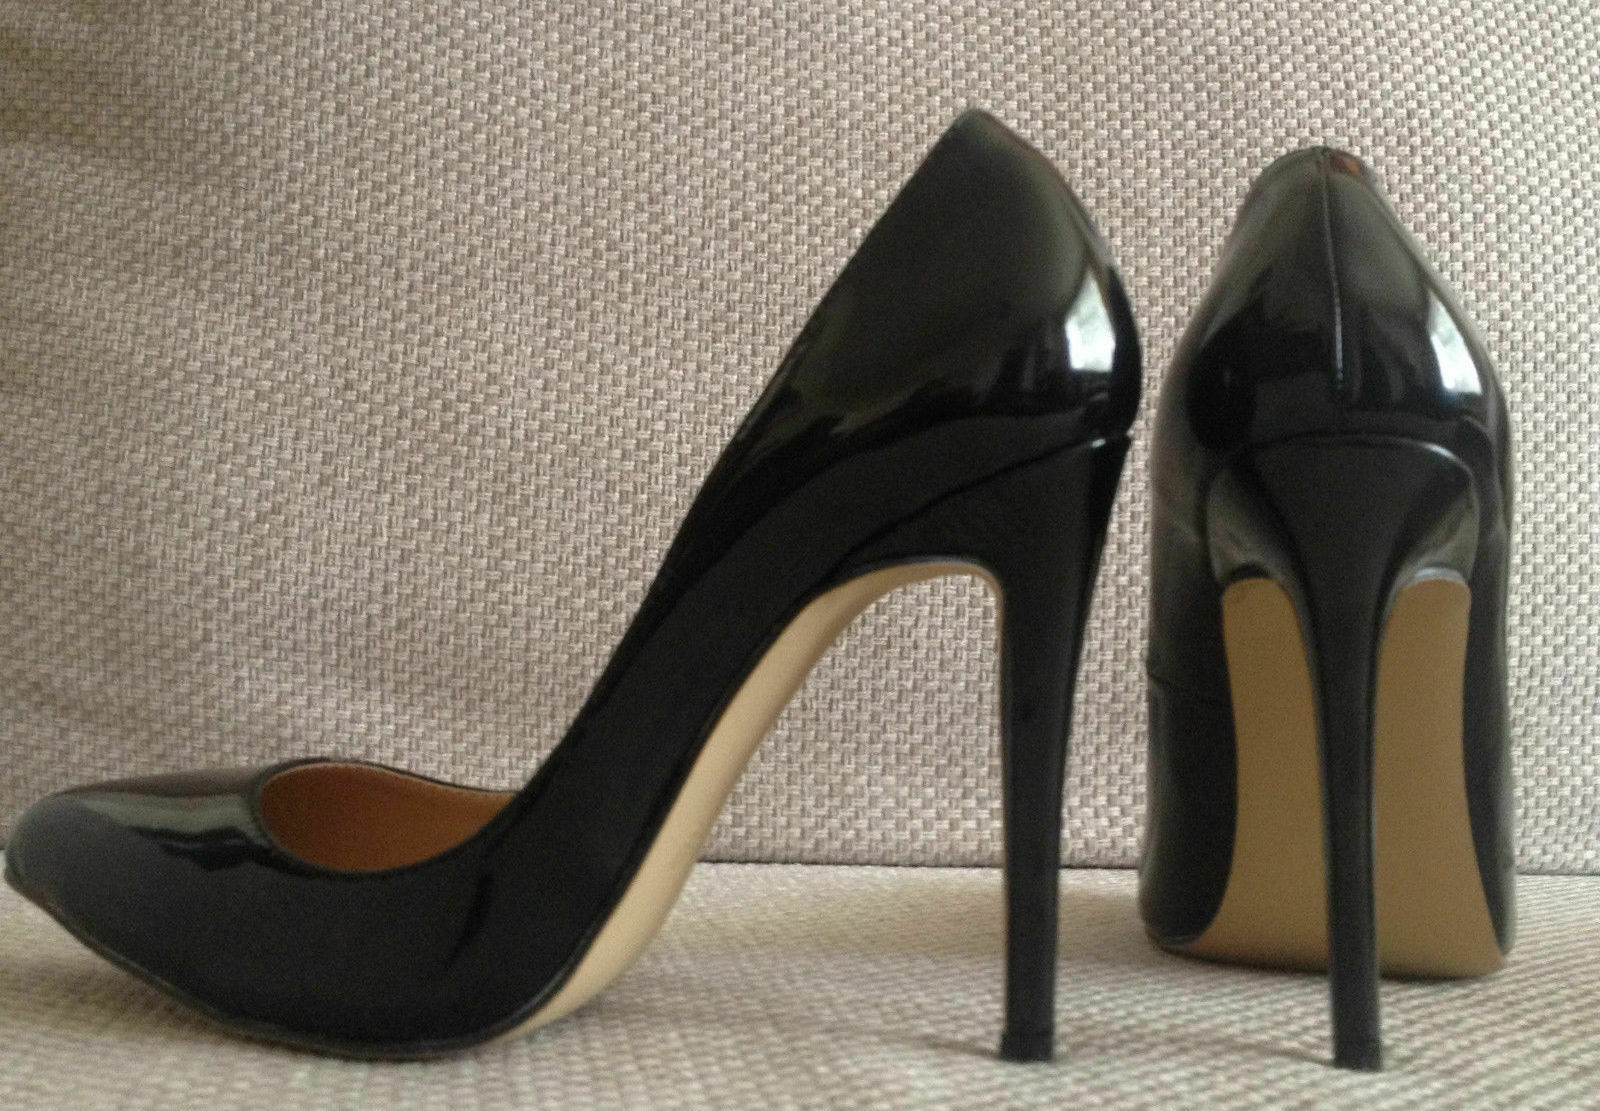 BLACK BLACK BLACK FAUX PATENT LEATHER HIGH HEEL POINTED COURT SHOES 39 BRAND NEW 90cc29